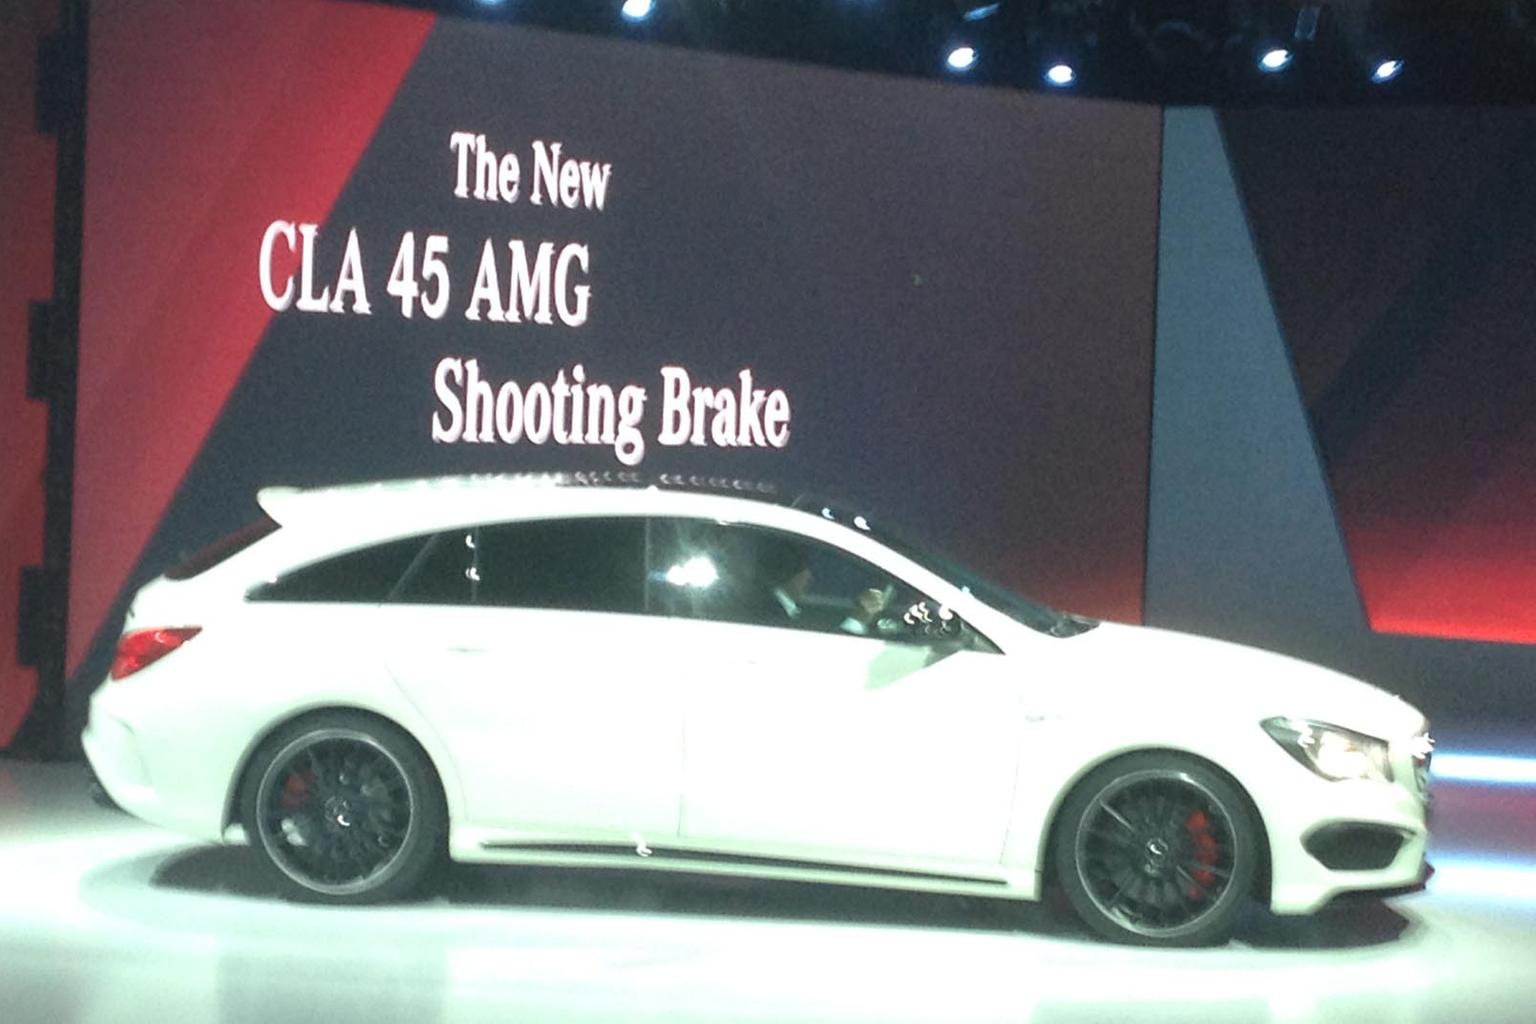 2015 Mercedes CLA Shooting Brake - engines, specification and release date